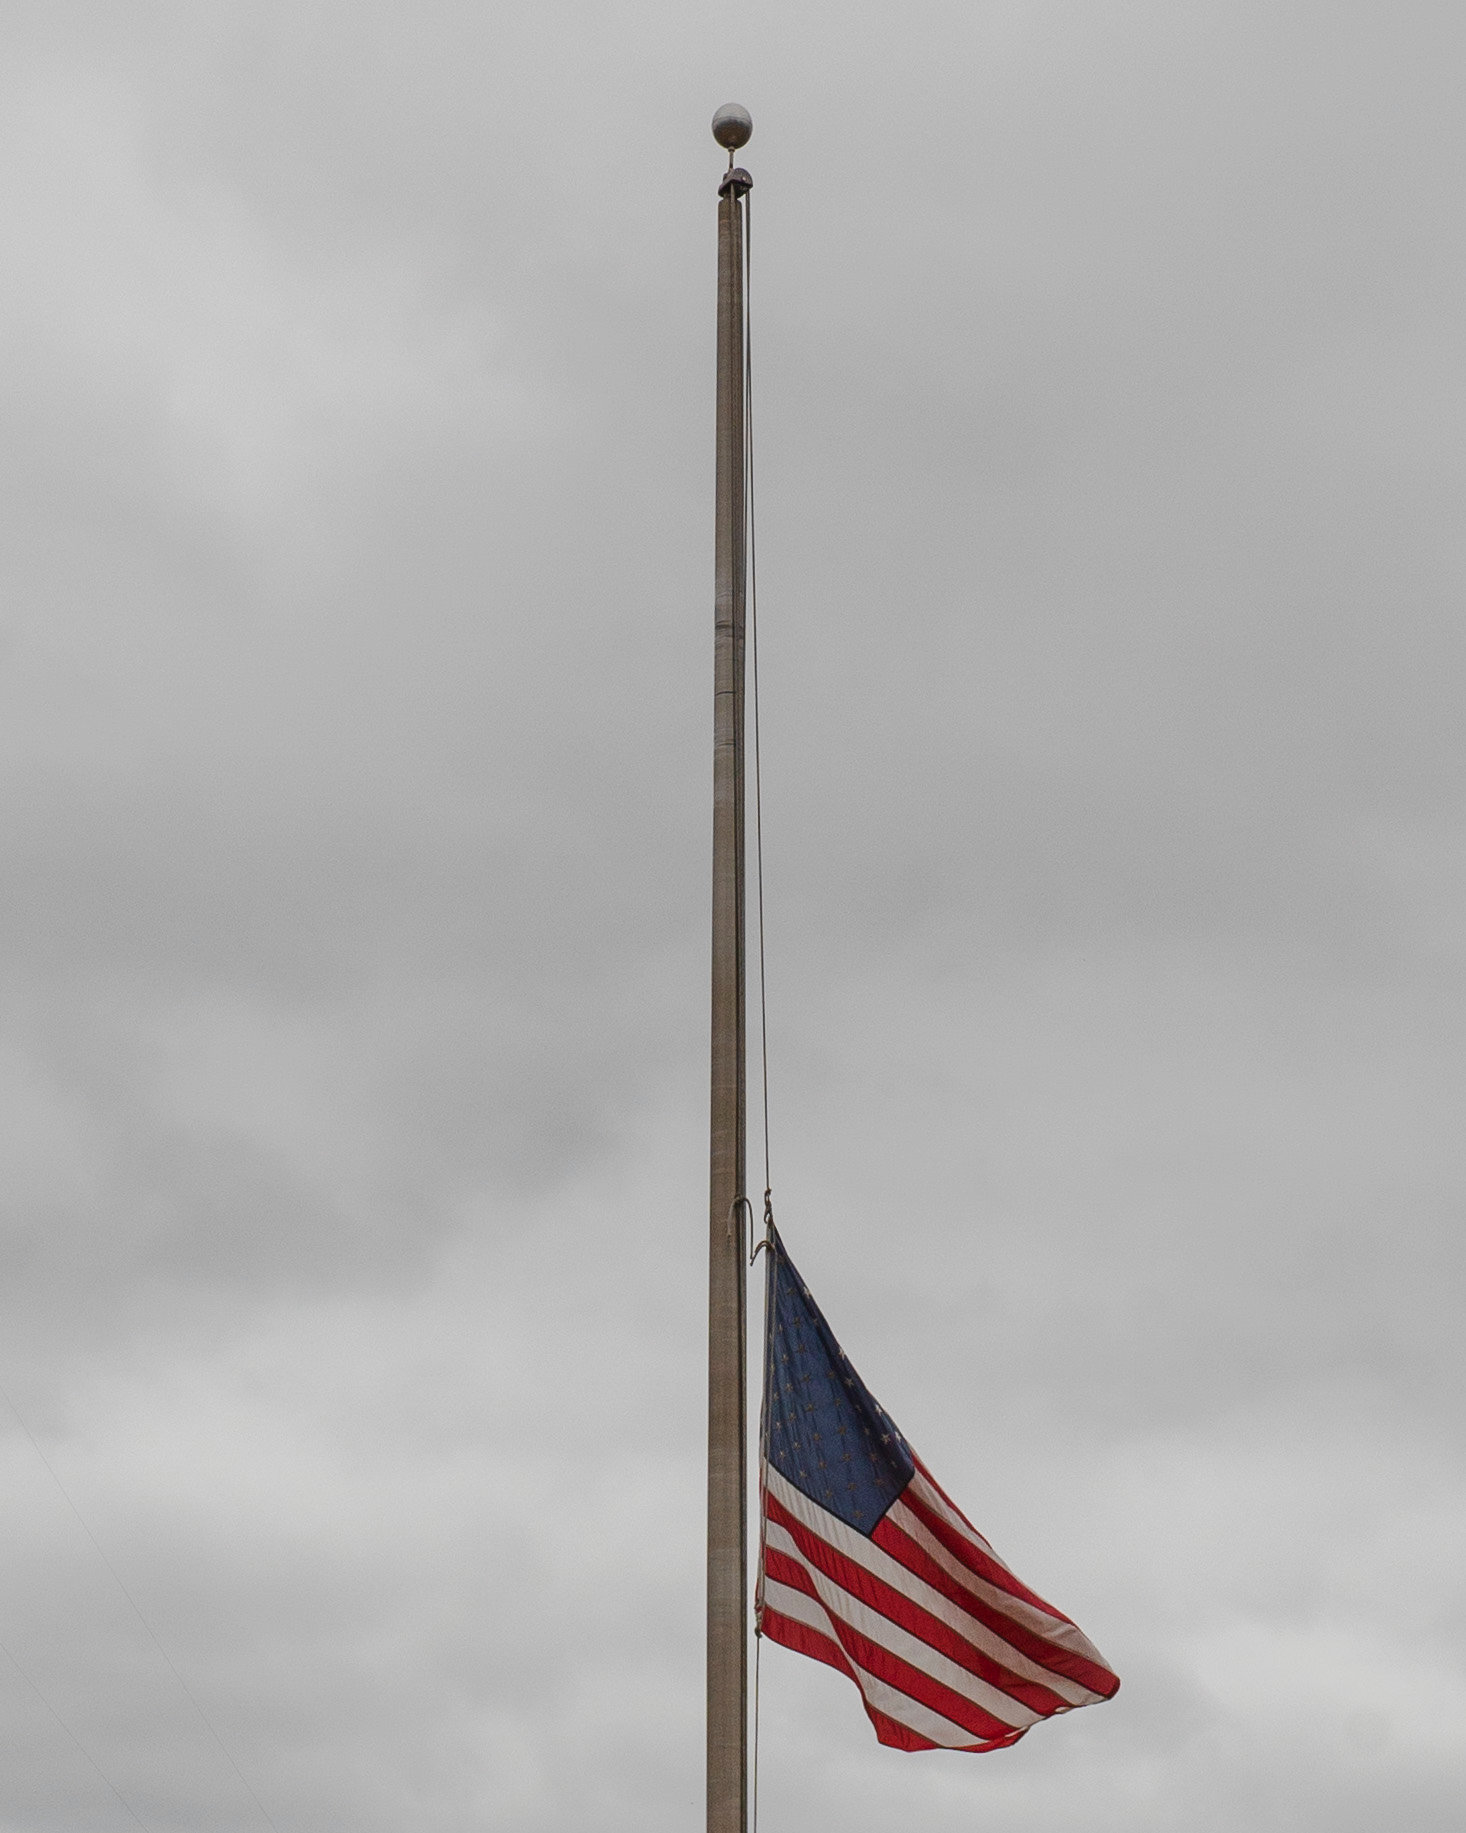 The flag flies at half staff Tuesday in front of the Sumter County Sheriff's Office headquarters.